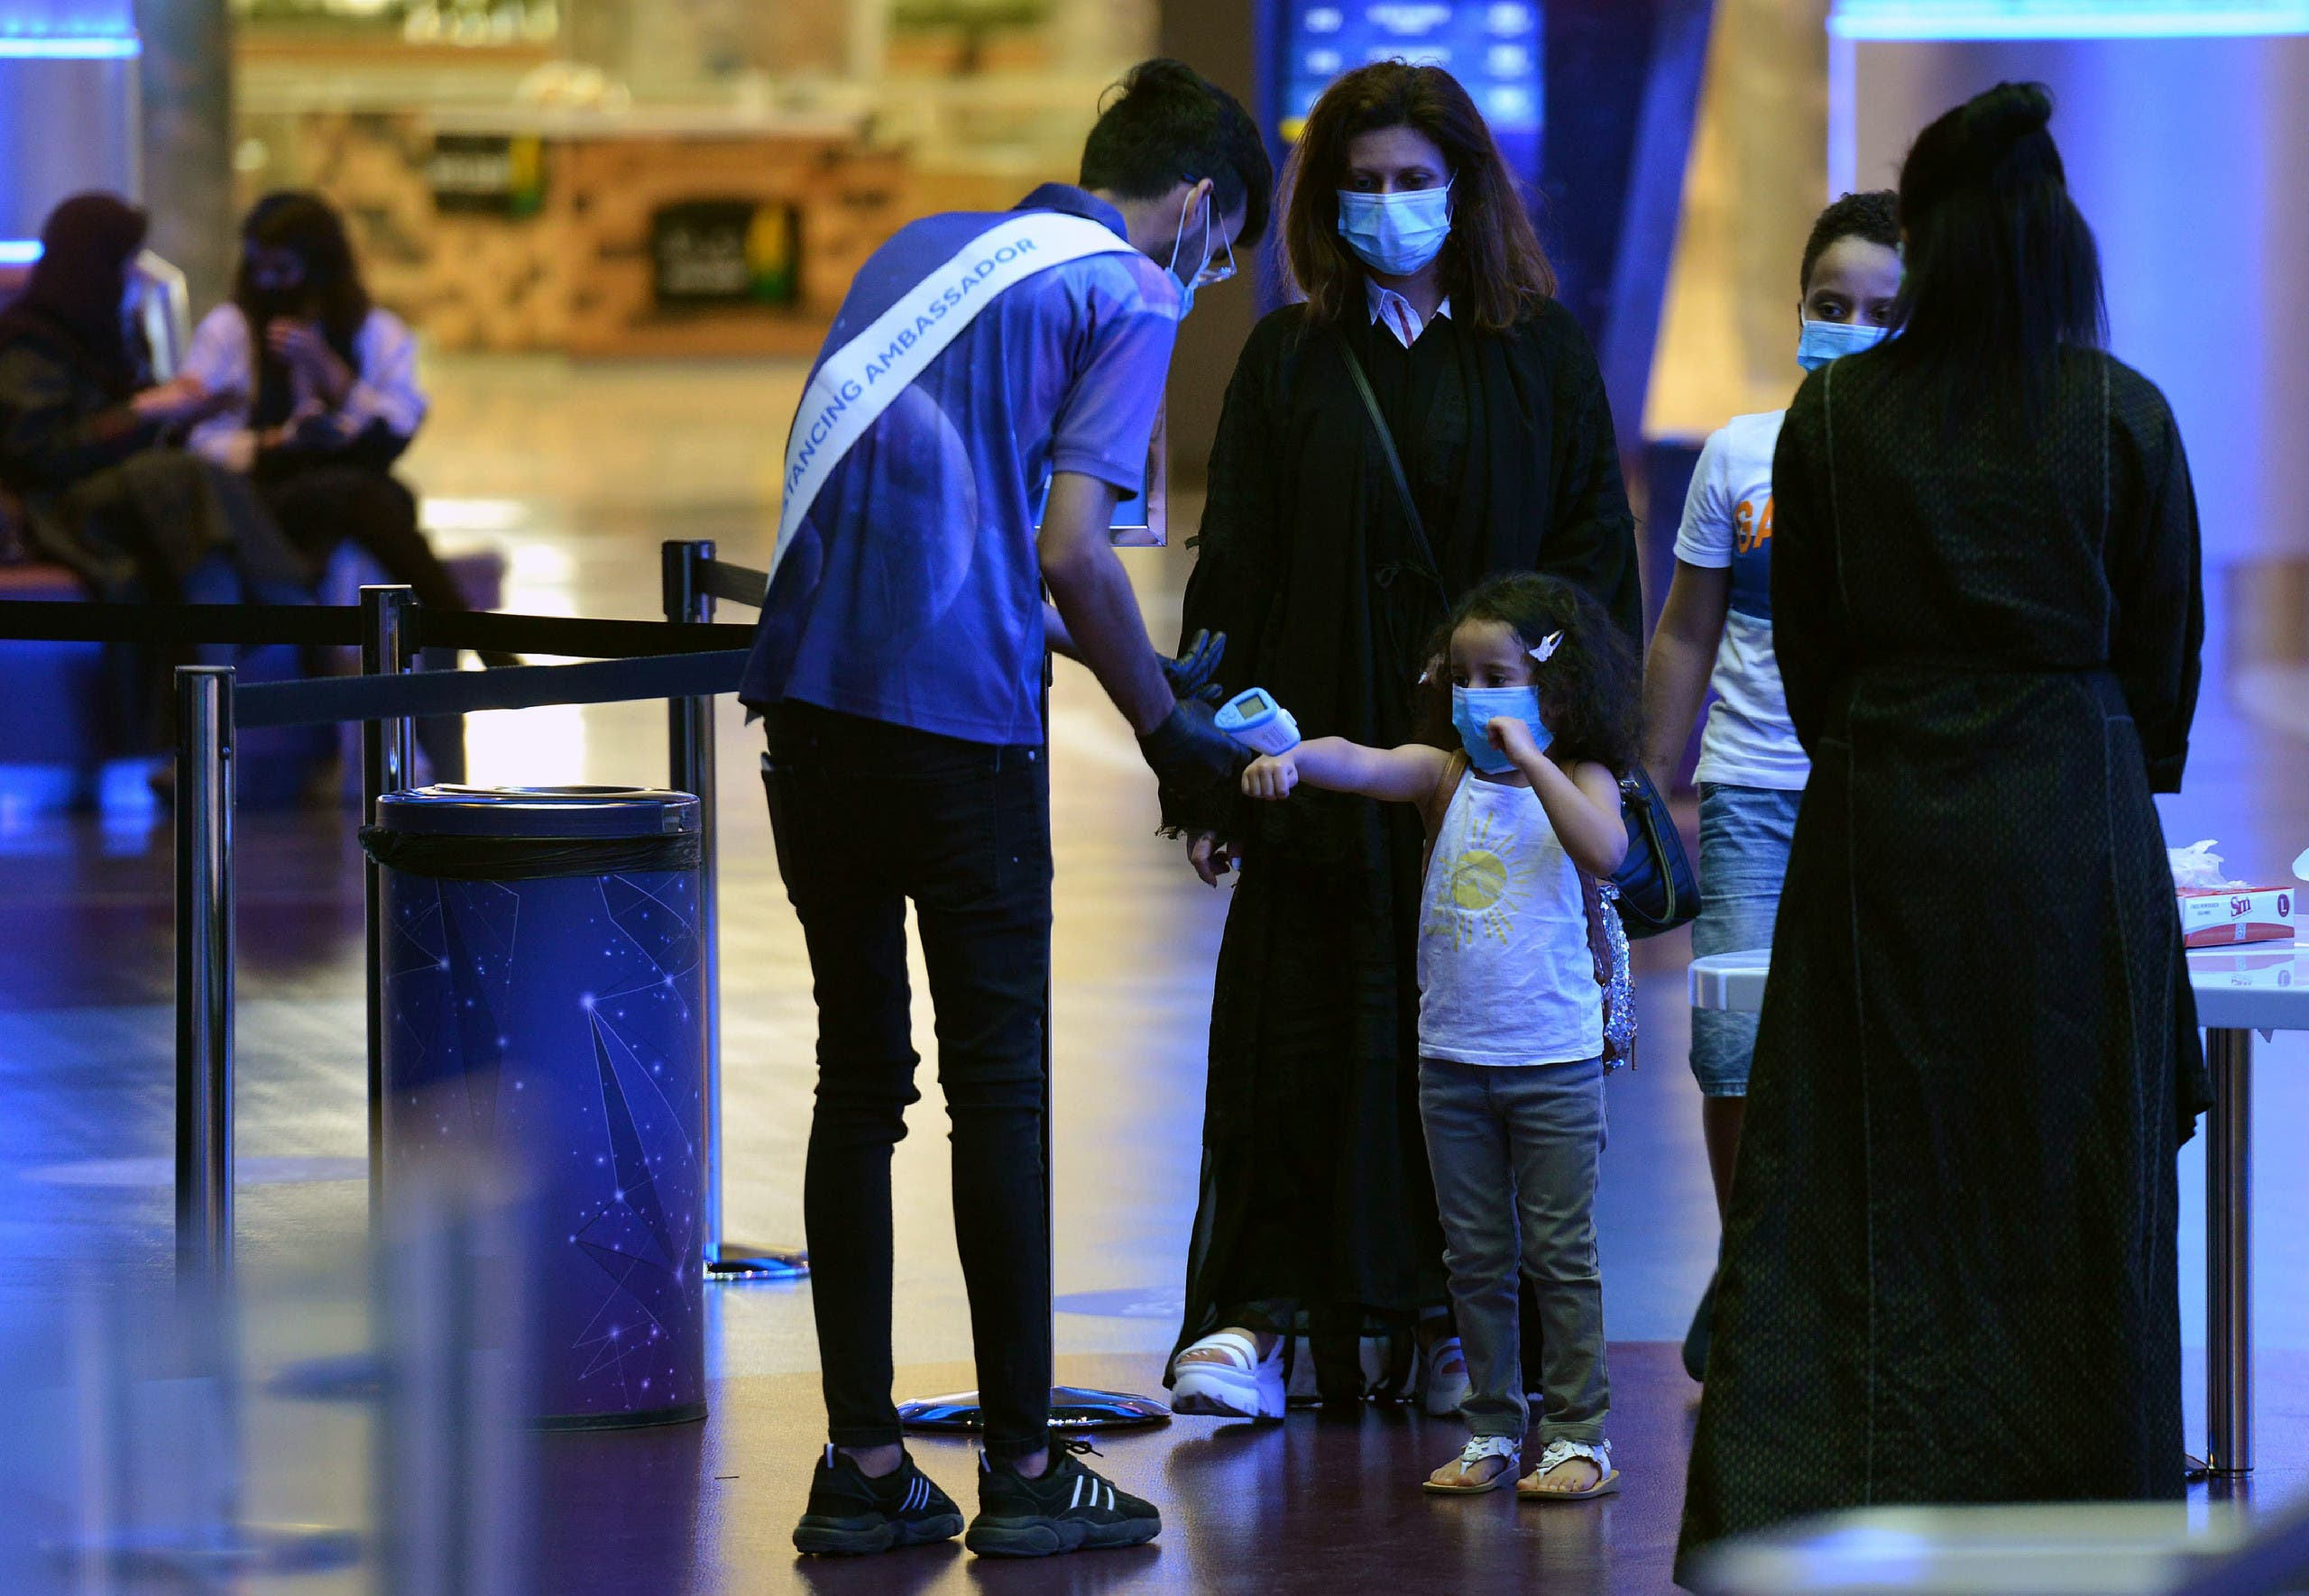 A man measures the temperature of a child as a family enter a movie theatre at a cinema in the Saudi capital Riyadh, on June 22, 2020 as cinemas re-opened following the lifting of a lockdown due to the COVID-19 coronavirus pandemic. (File photo: AFP)